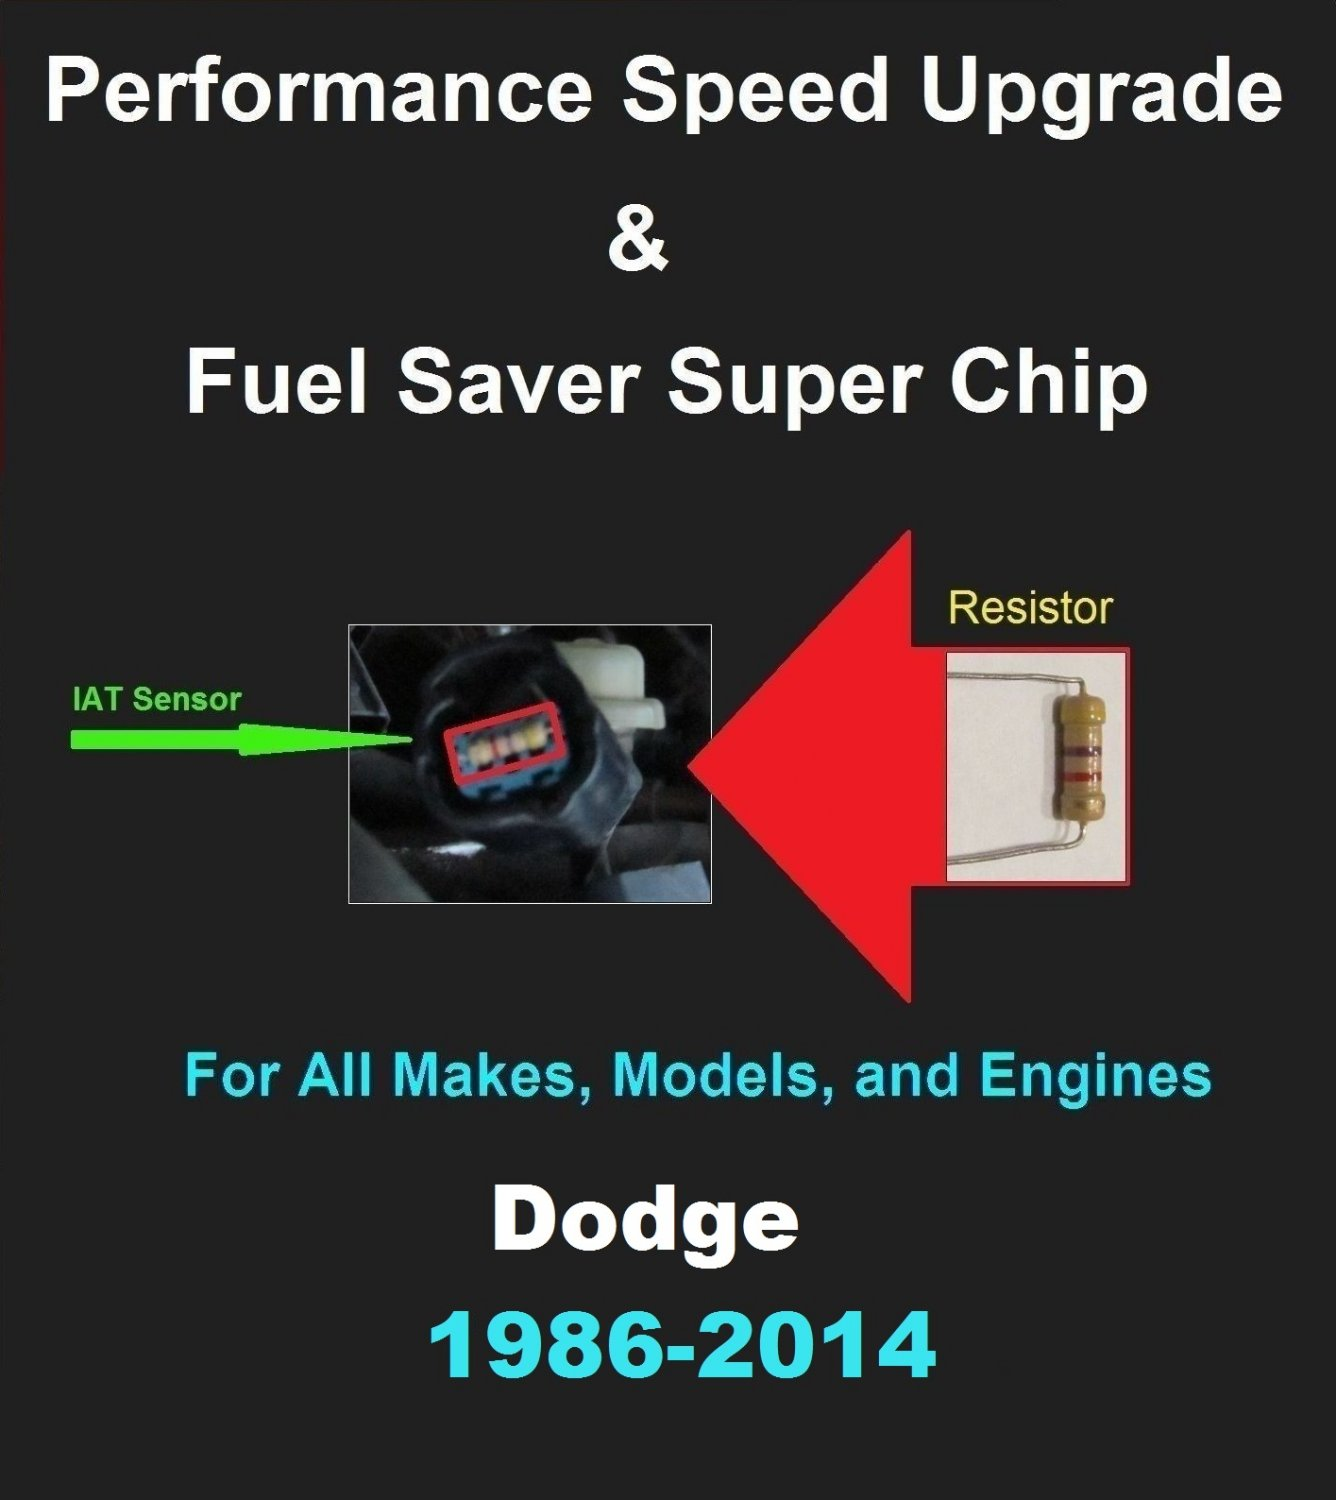 Dodge Performance IAT Sensor Resistor Chip Mod Kit Increase MPG HP Speed Power Super Fuel Gas Saver